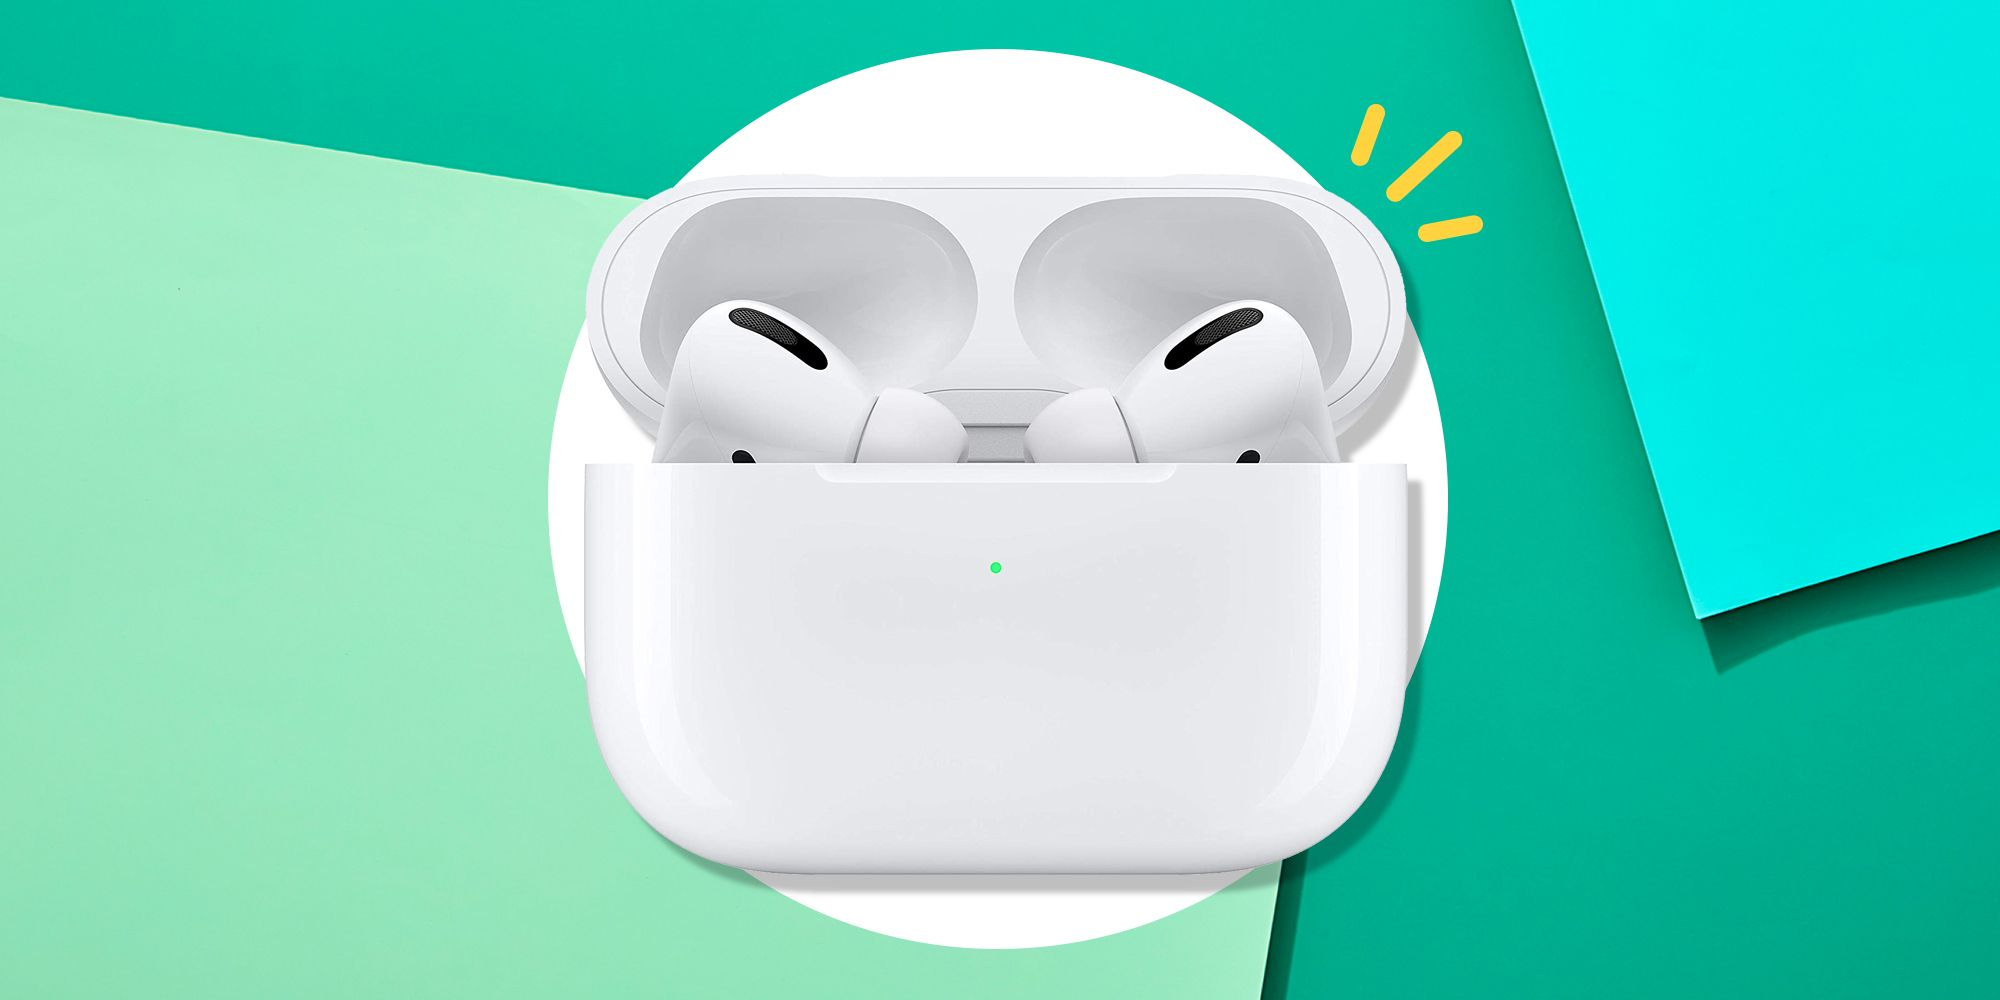 Amazon Secretly Took Over $50 Off The Noise-Cancelling AirPods Pro